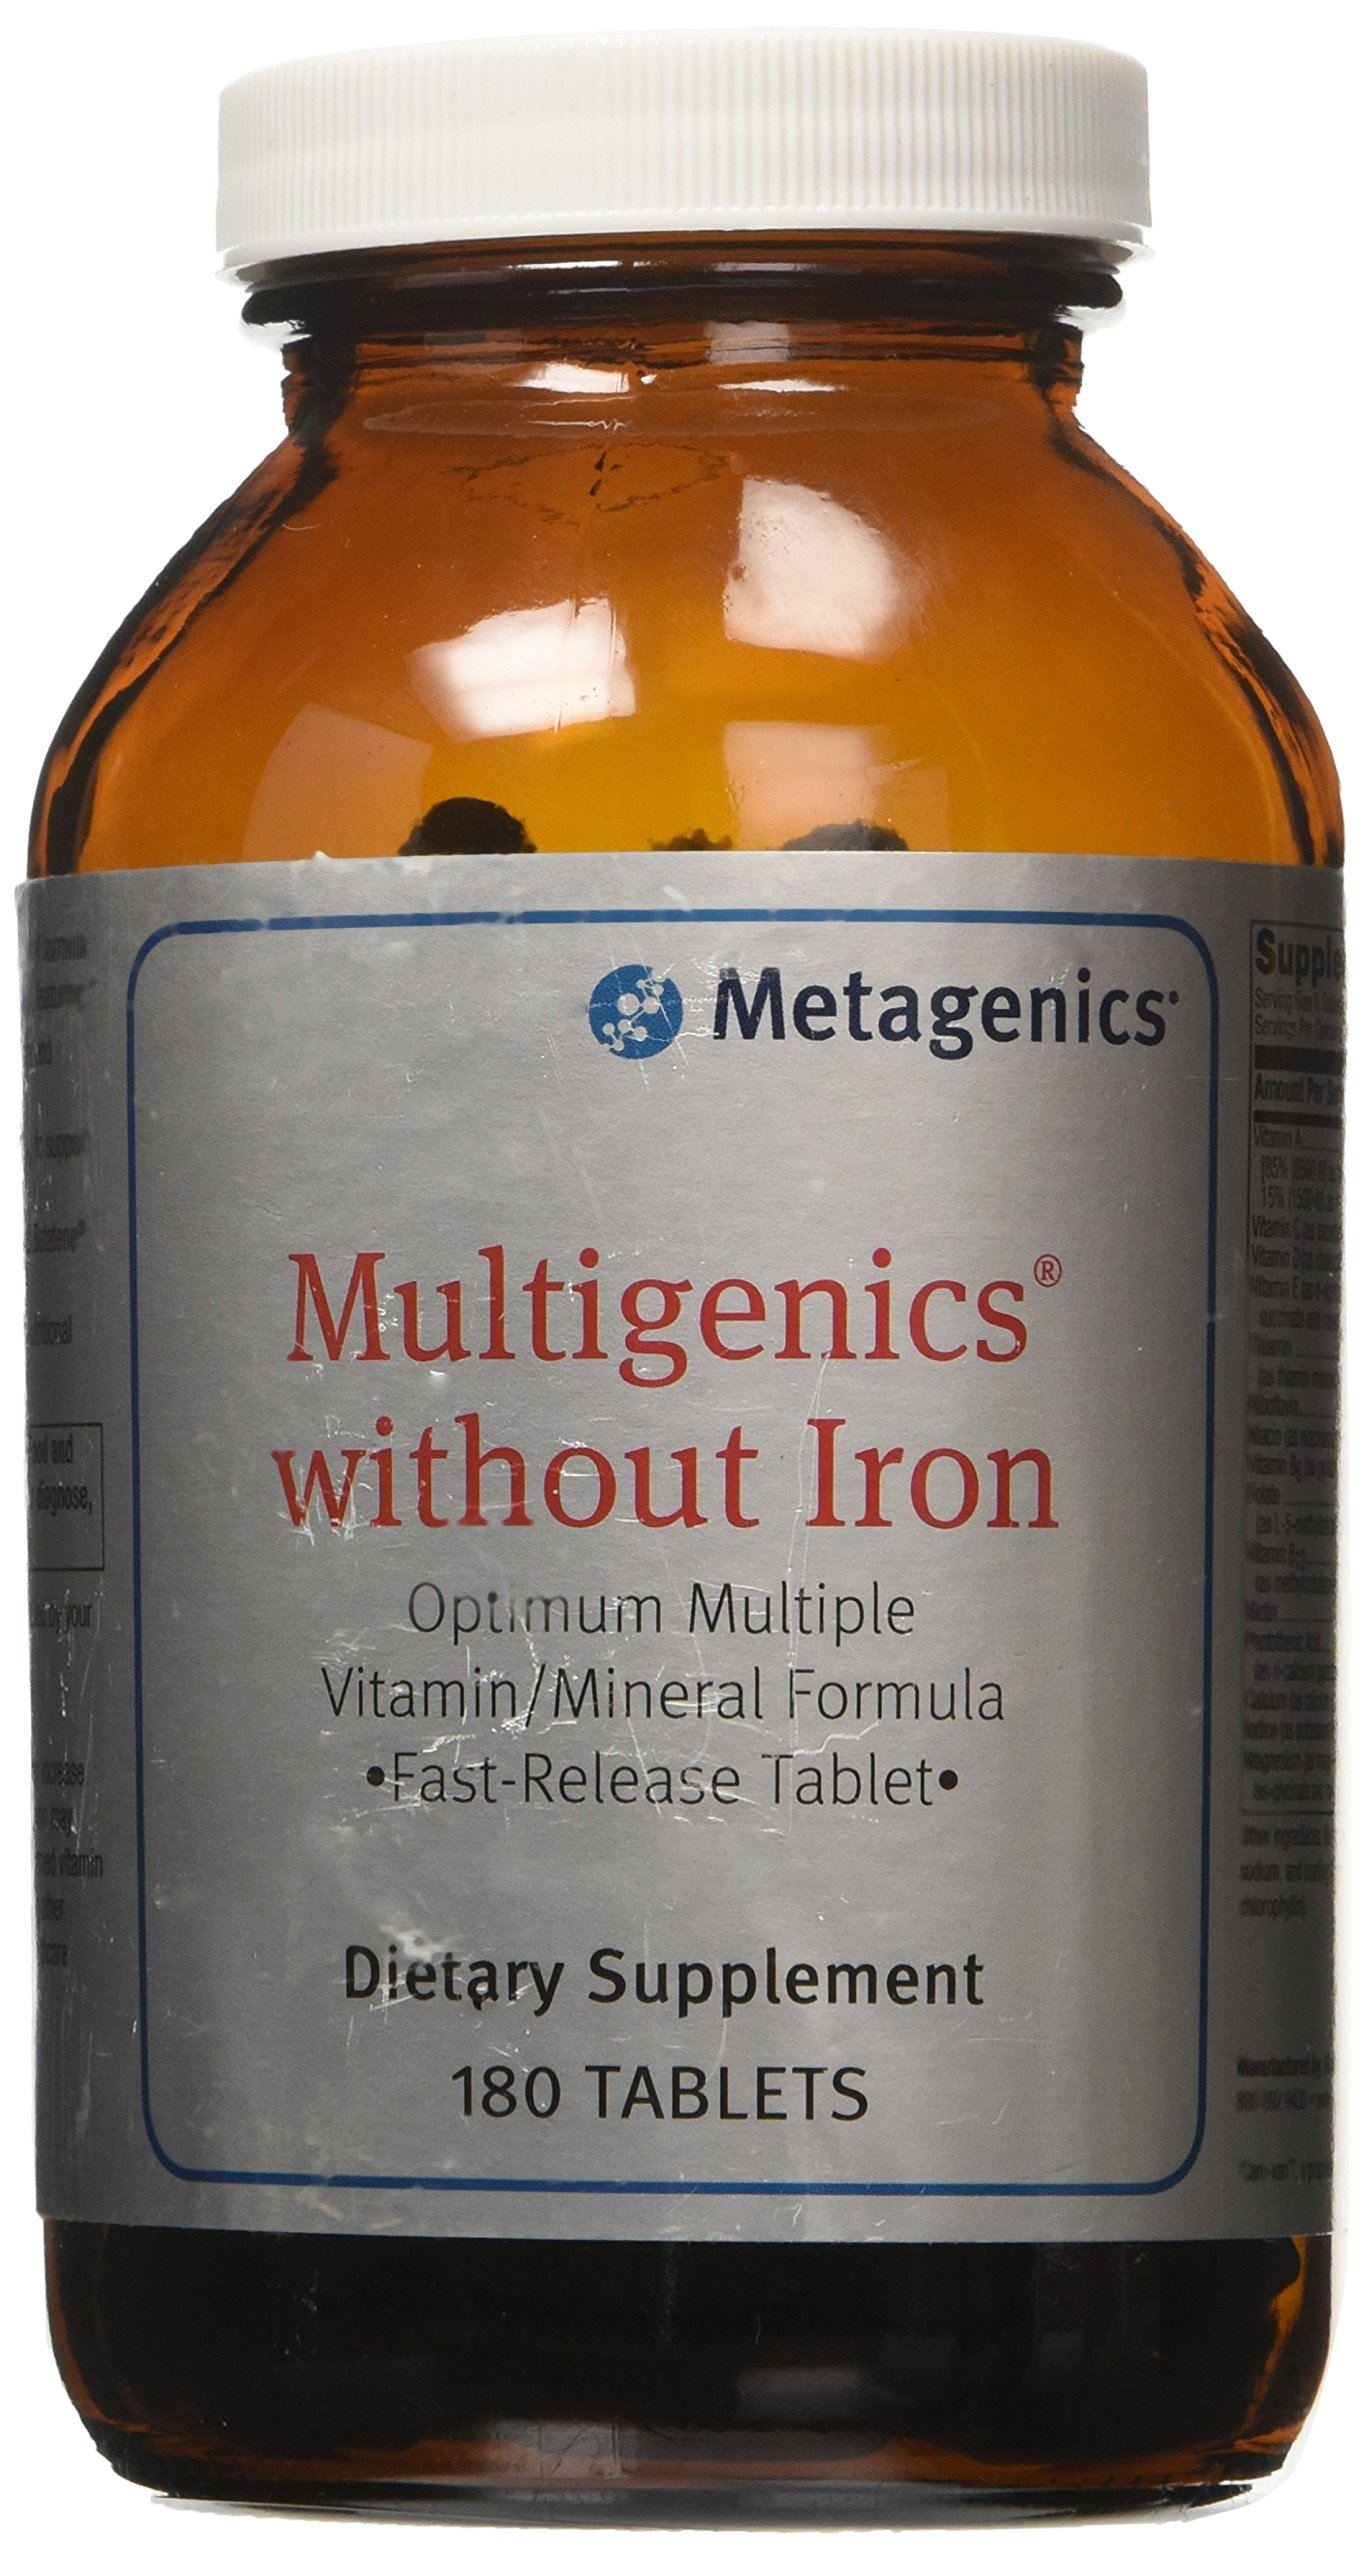 Metagenics - Multigenics without Iron - 180 Tablets